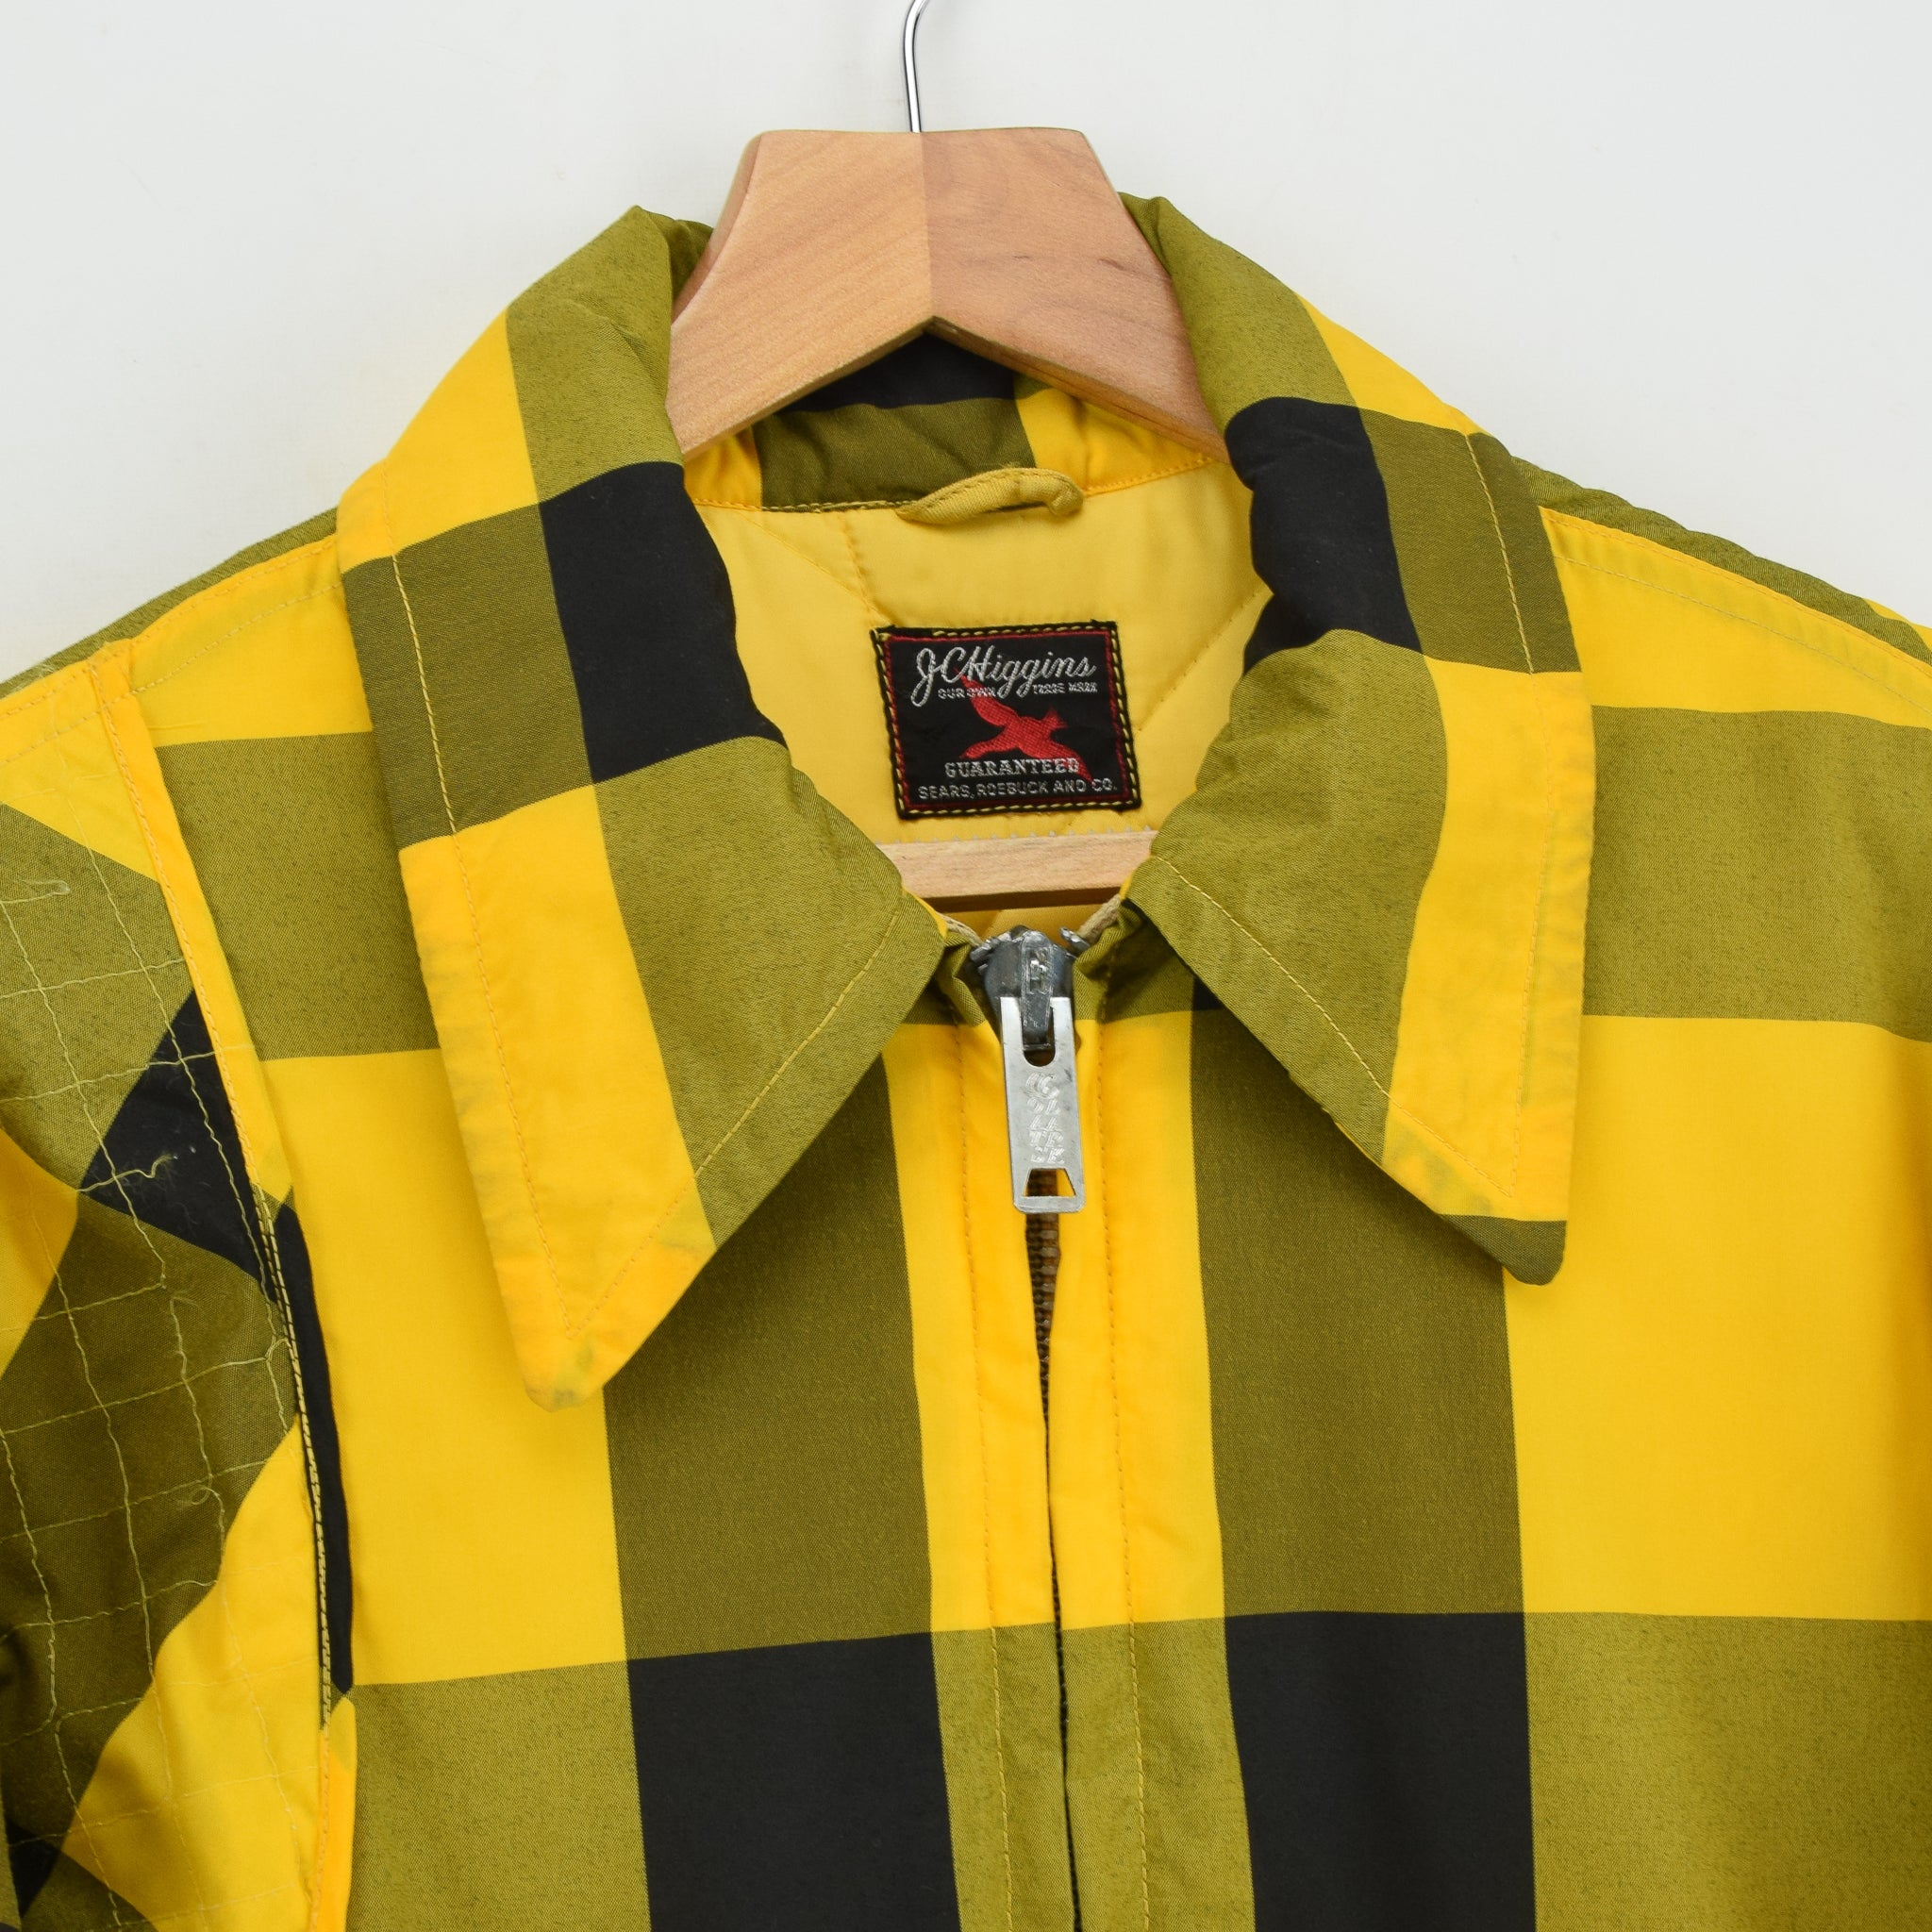 Vintage Sears Plaid Check Yellow Hunting Style Jacket Made in USA L collar